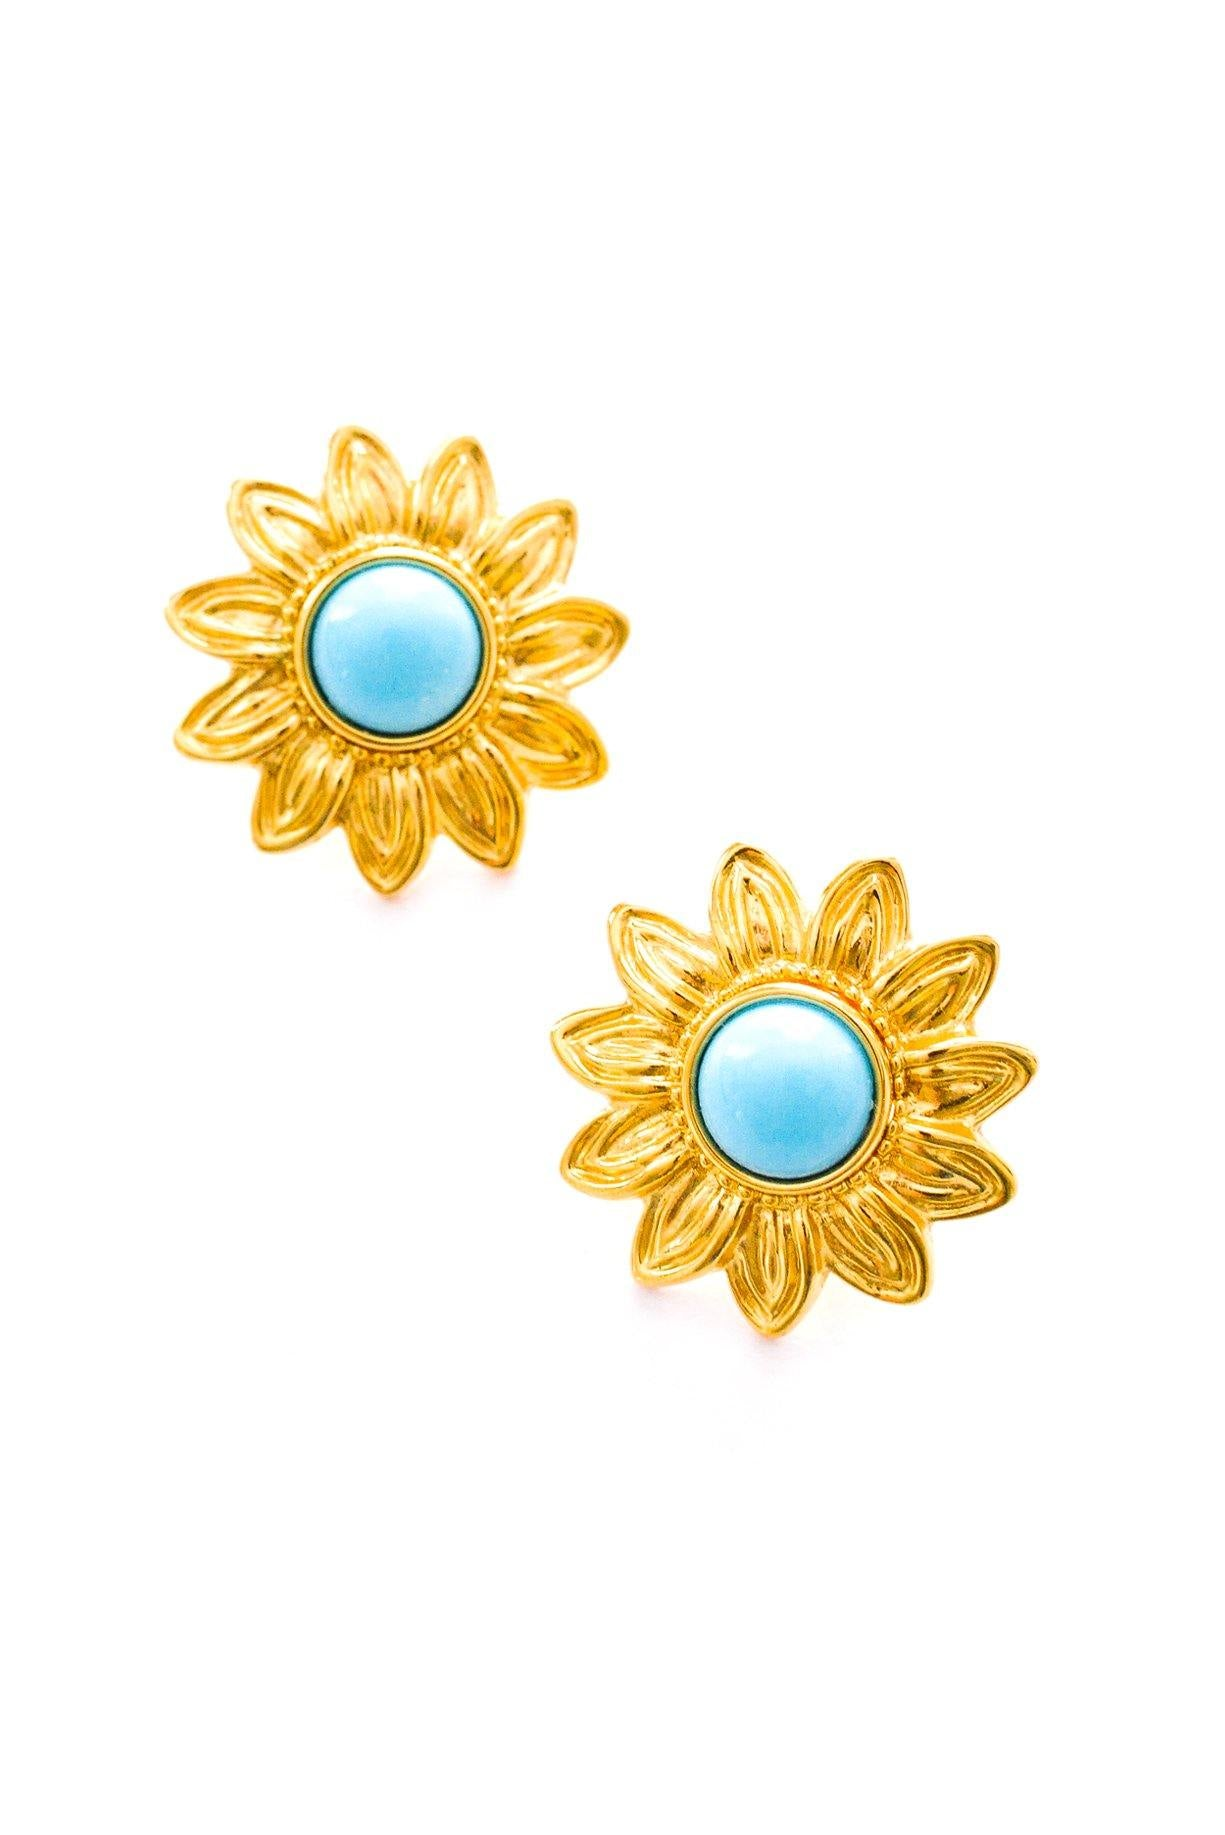 Vintage Joan Rivers turquoise floral earrings from Sweet & Spark.